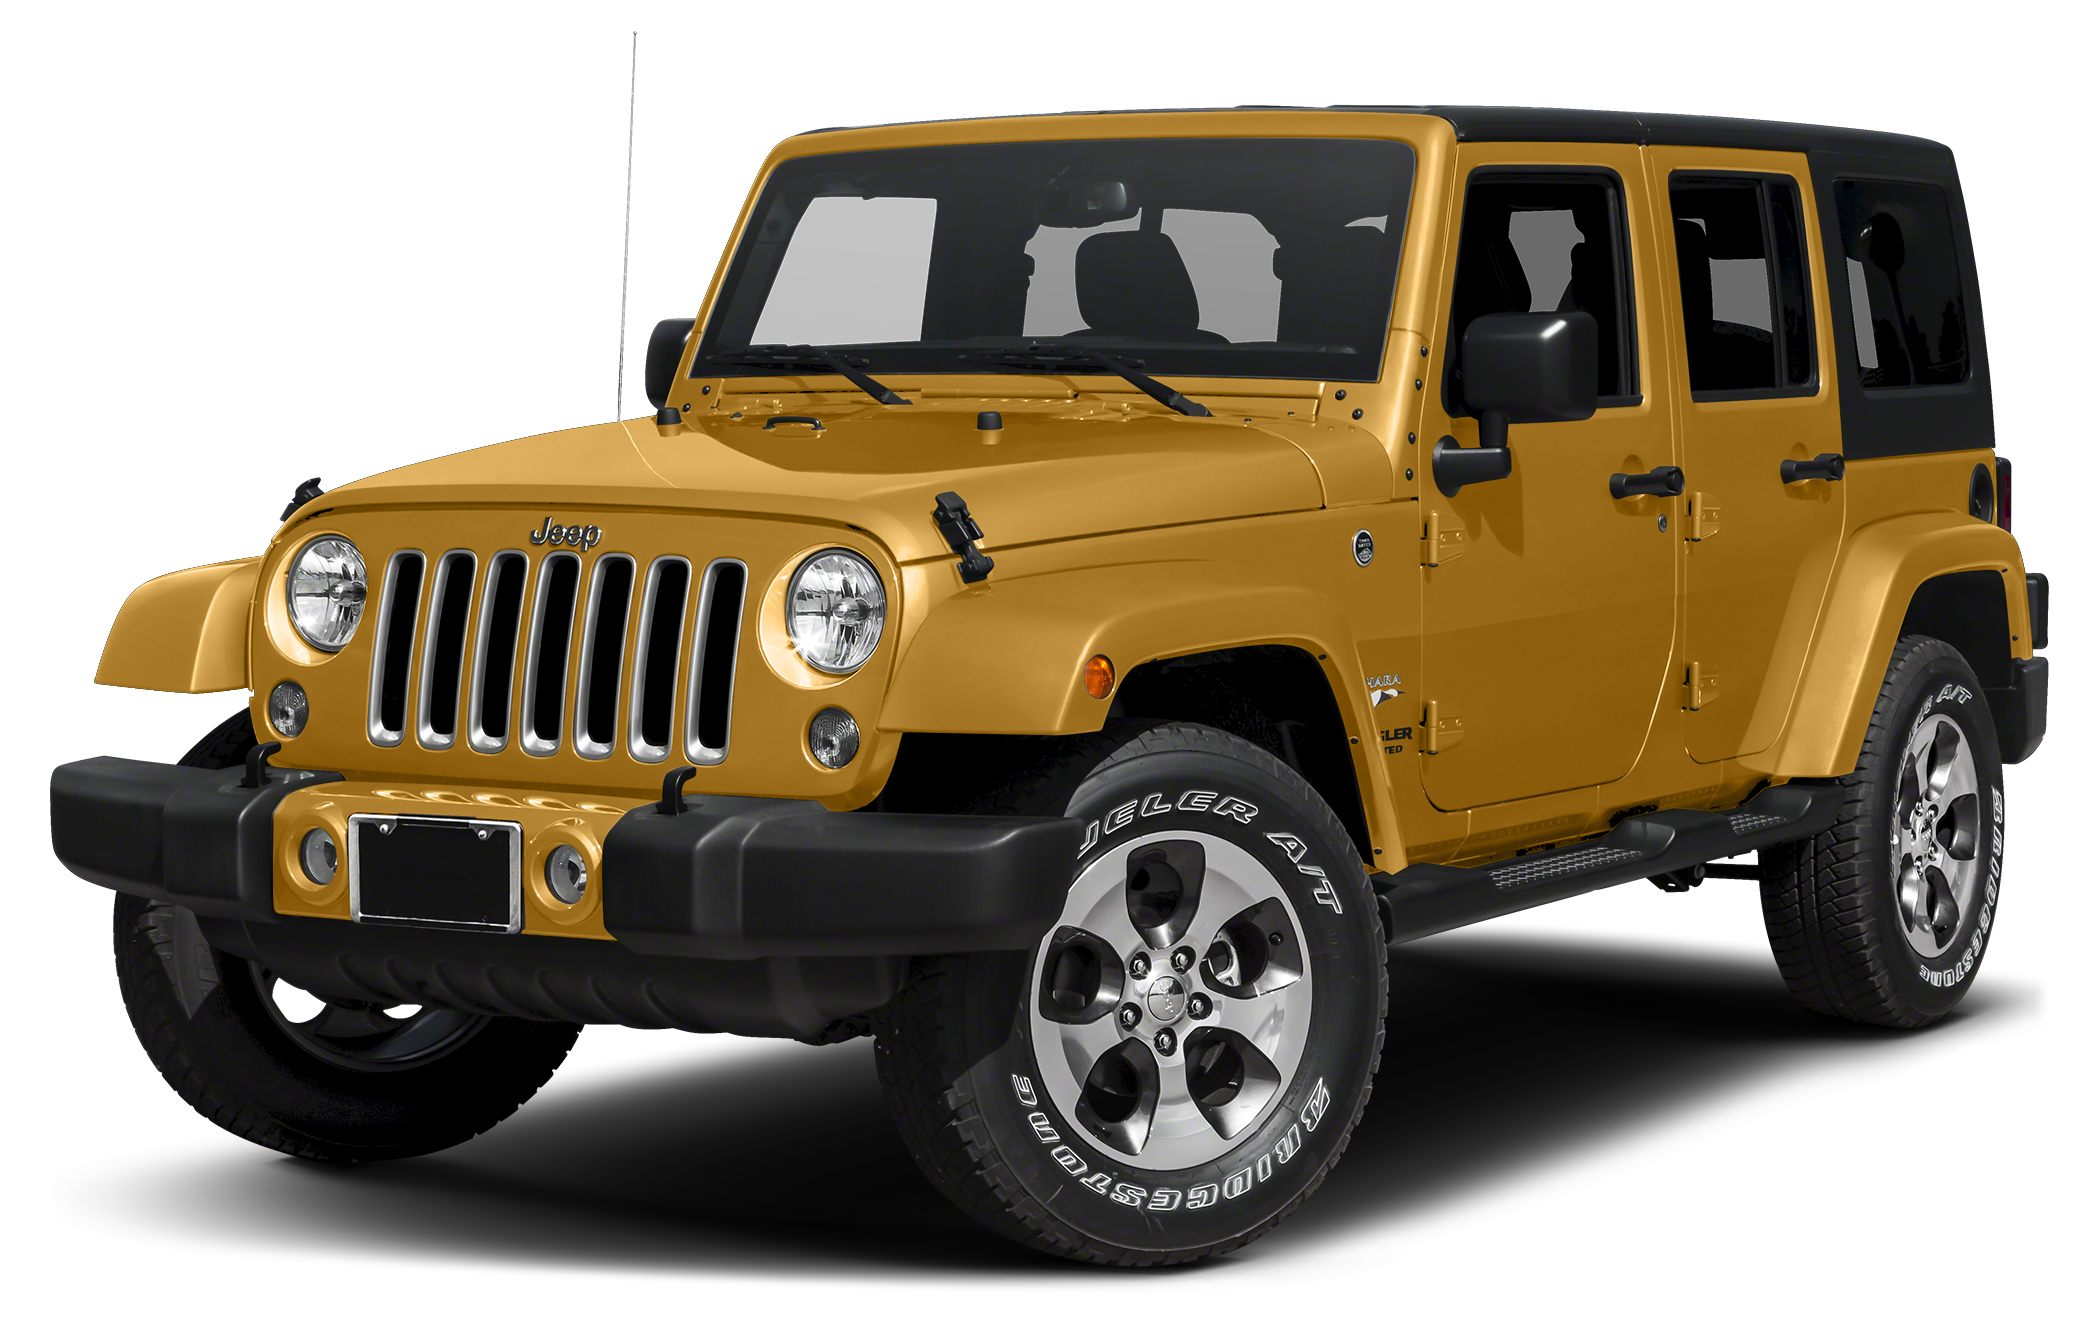 2014 Jeep Wrangler Unlimited Sahara Here at Lake Keowee Ford our customers come first and our pric